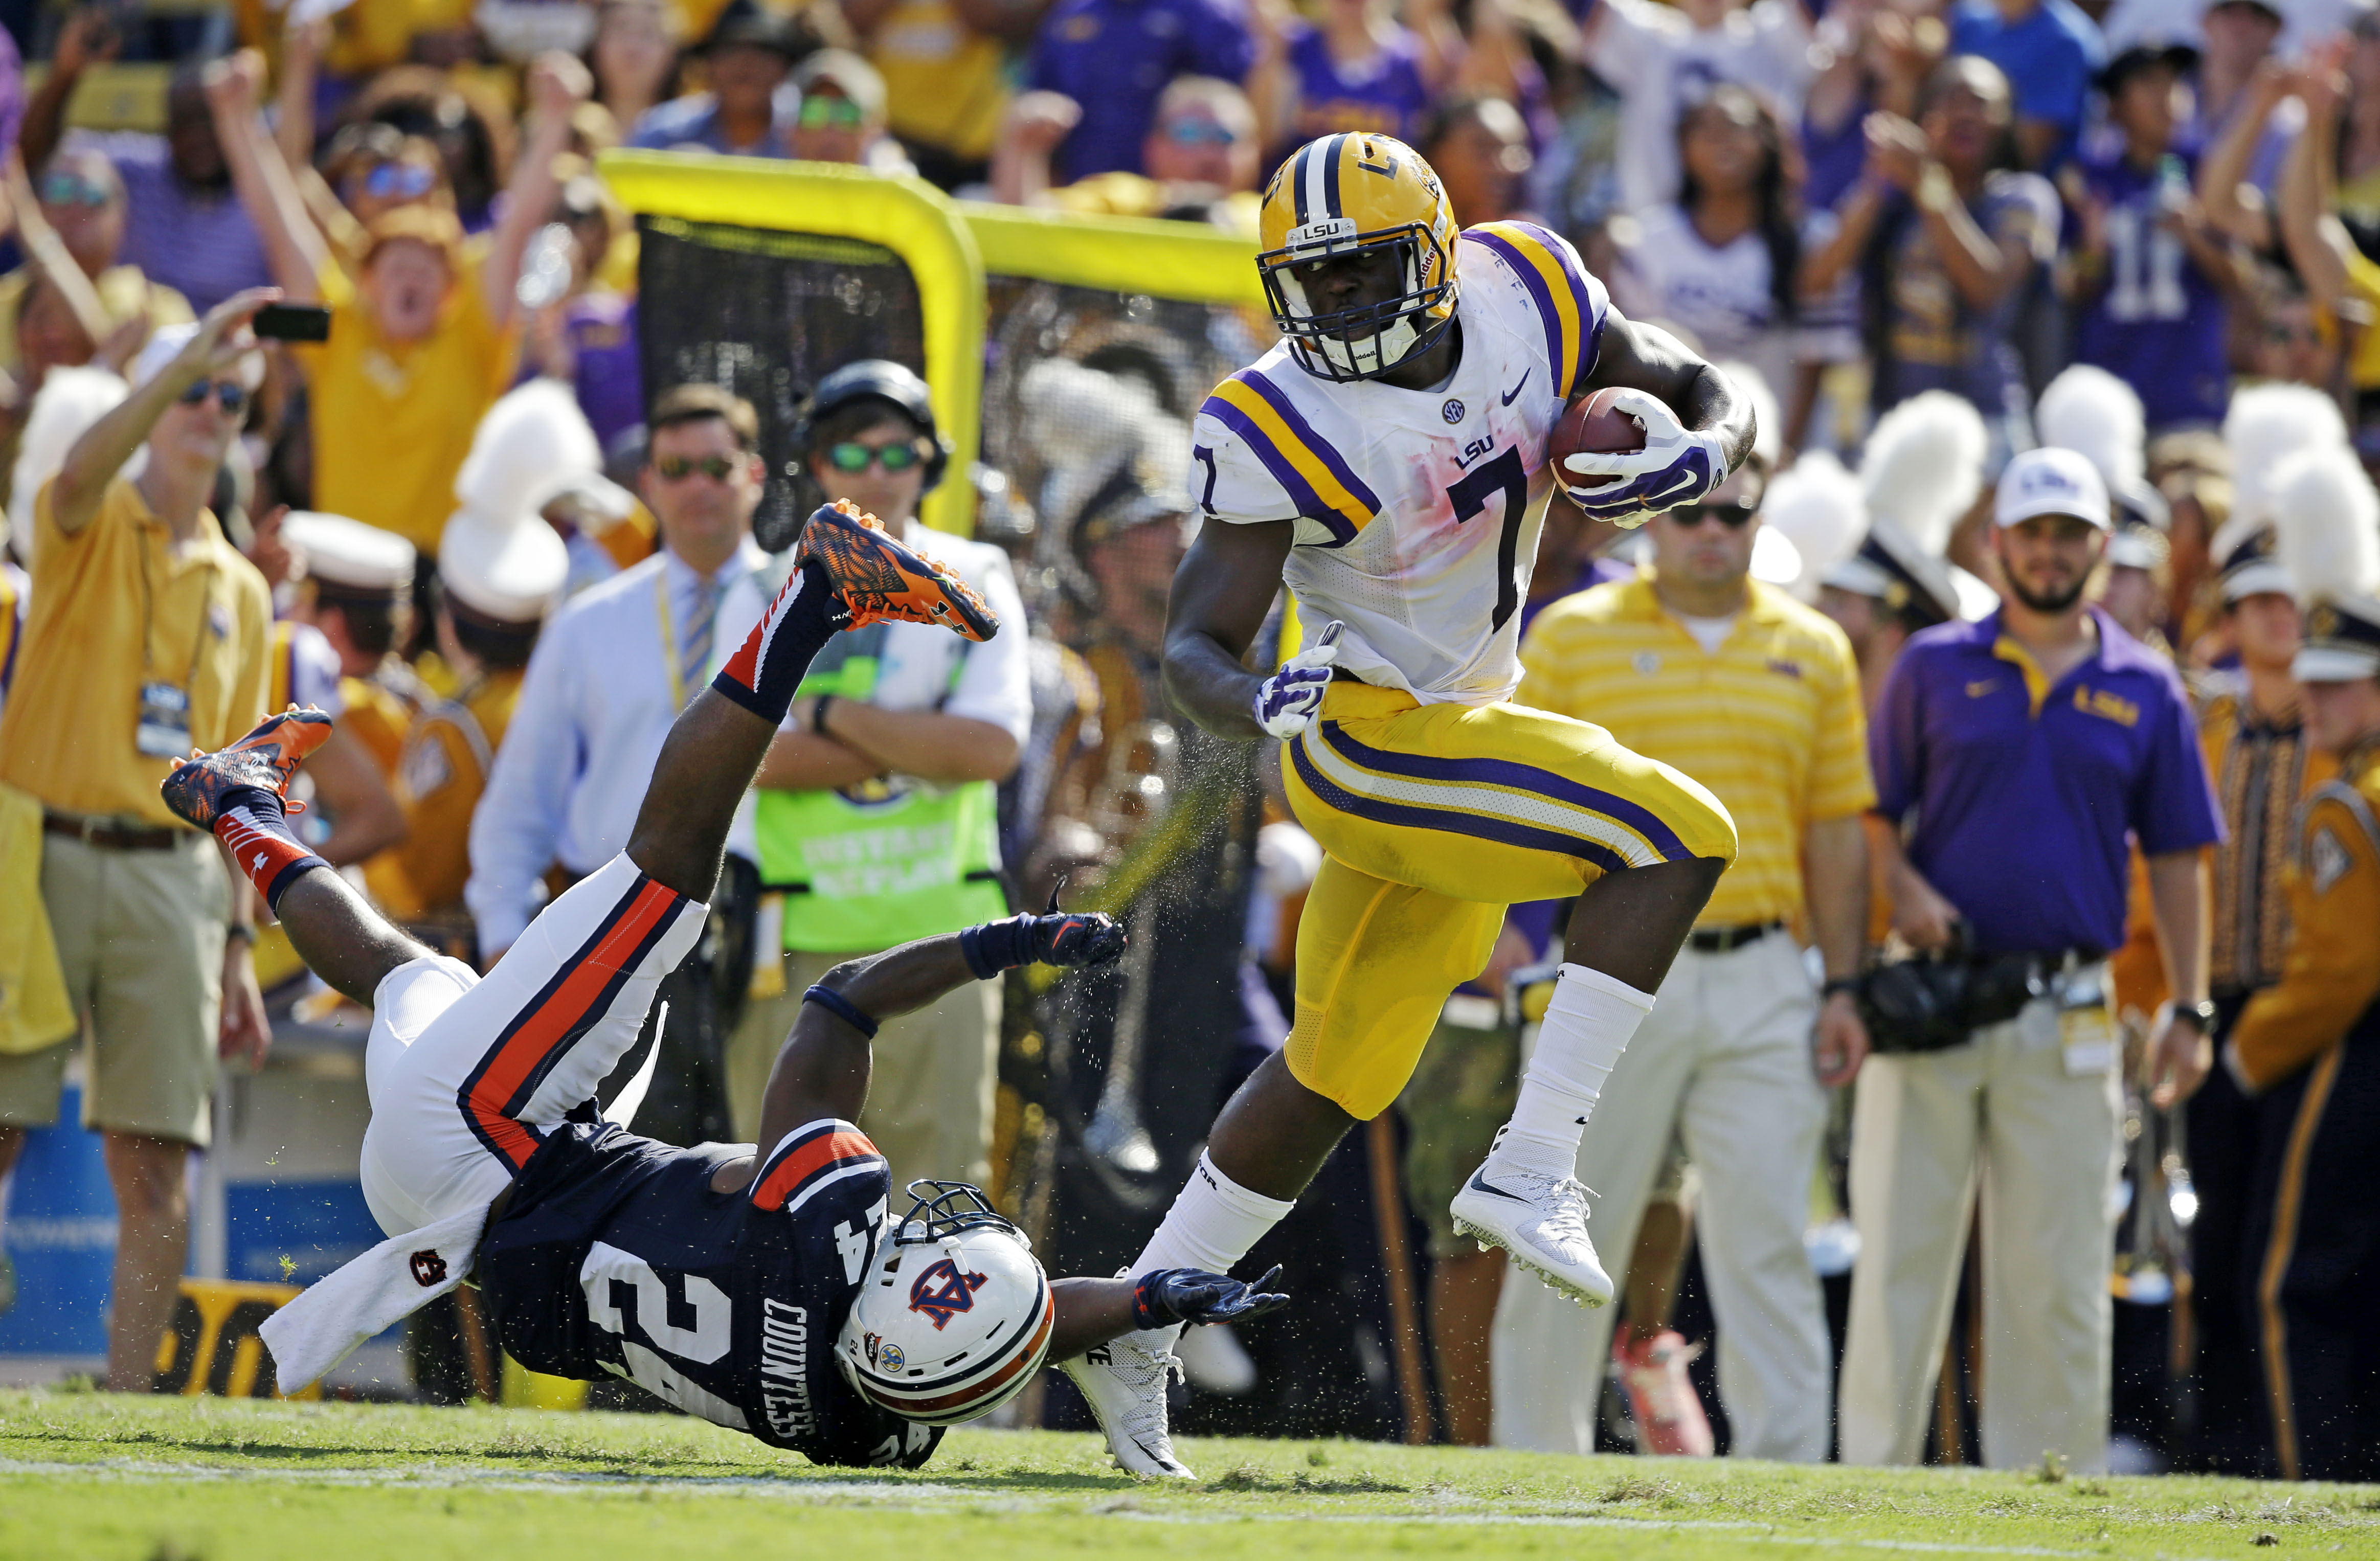 FILE - In this Sept. 19, 2015, file photo, LSU running back Leonard Fournette (7) gets away from Auburn defensive back Blake Countess (24) on a 40-yard touchdown run durin an NCAA college football game in Baton Rouge, La. No. 8 LSU is heading North to tak